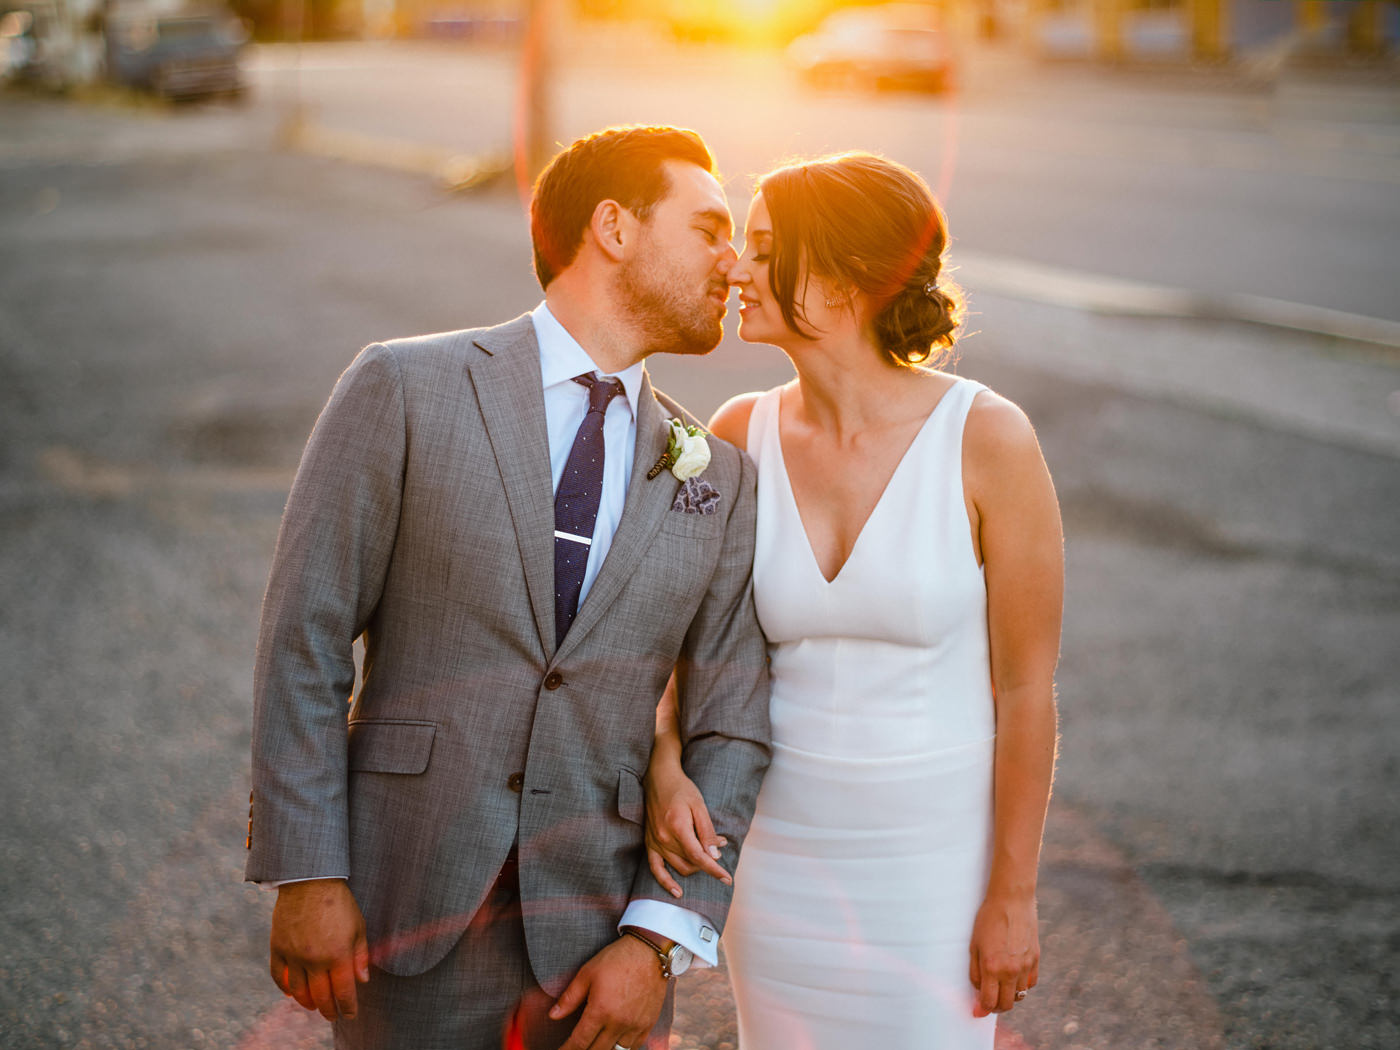 065-golden-hour-wedding-portraits-in-sodo-seattle-by-ryan-flynn.jpg